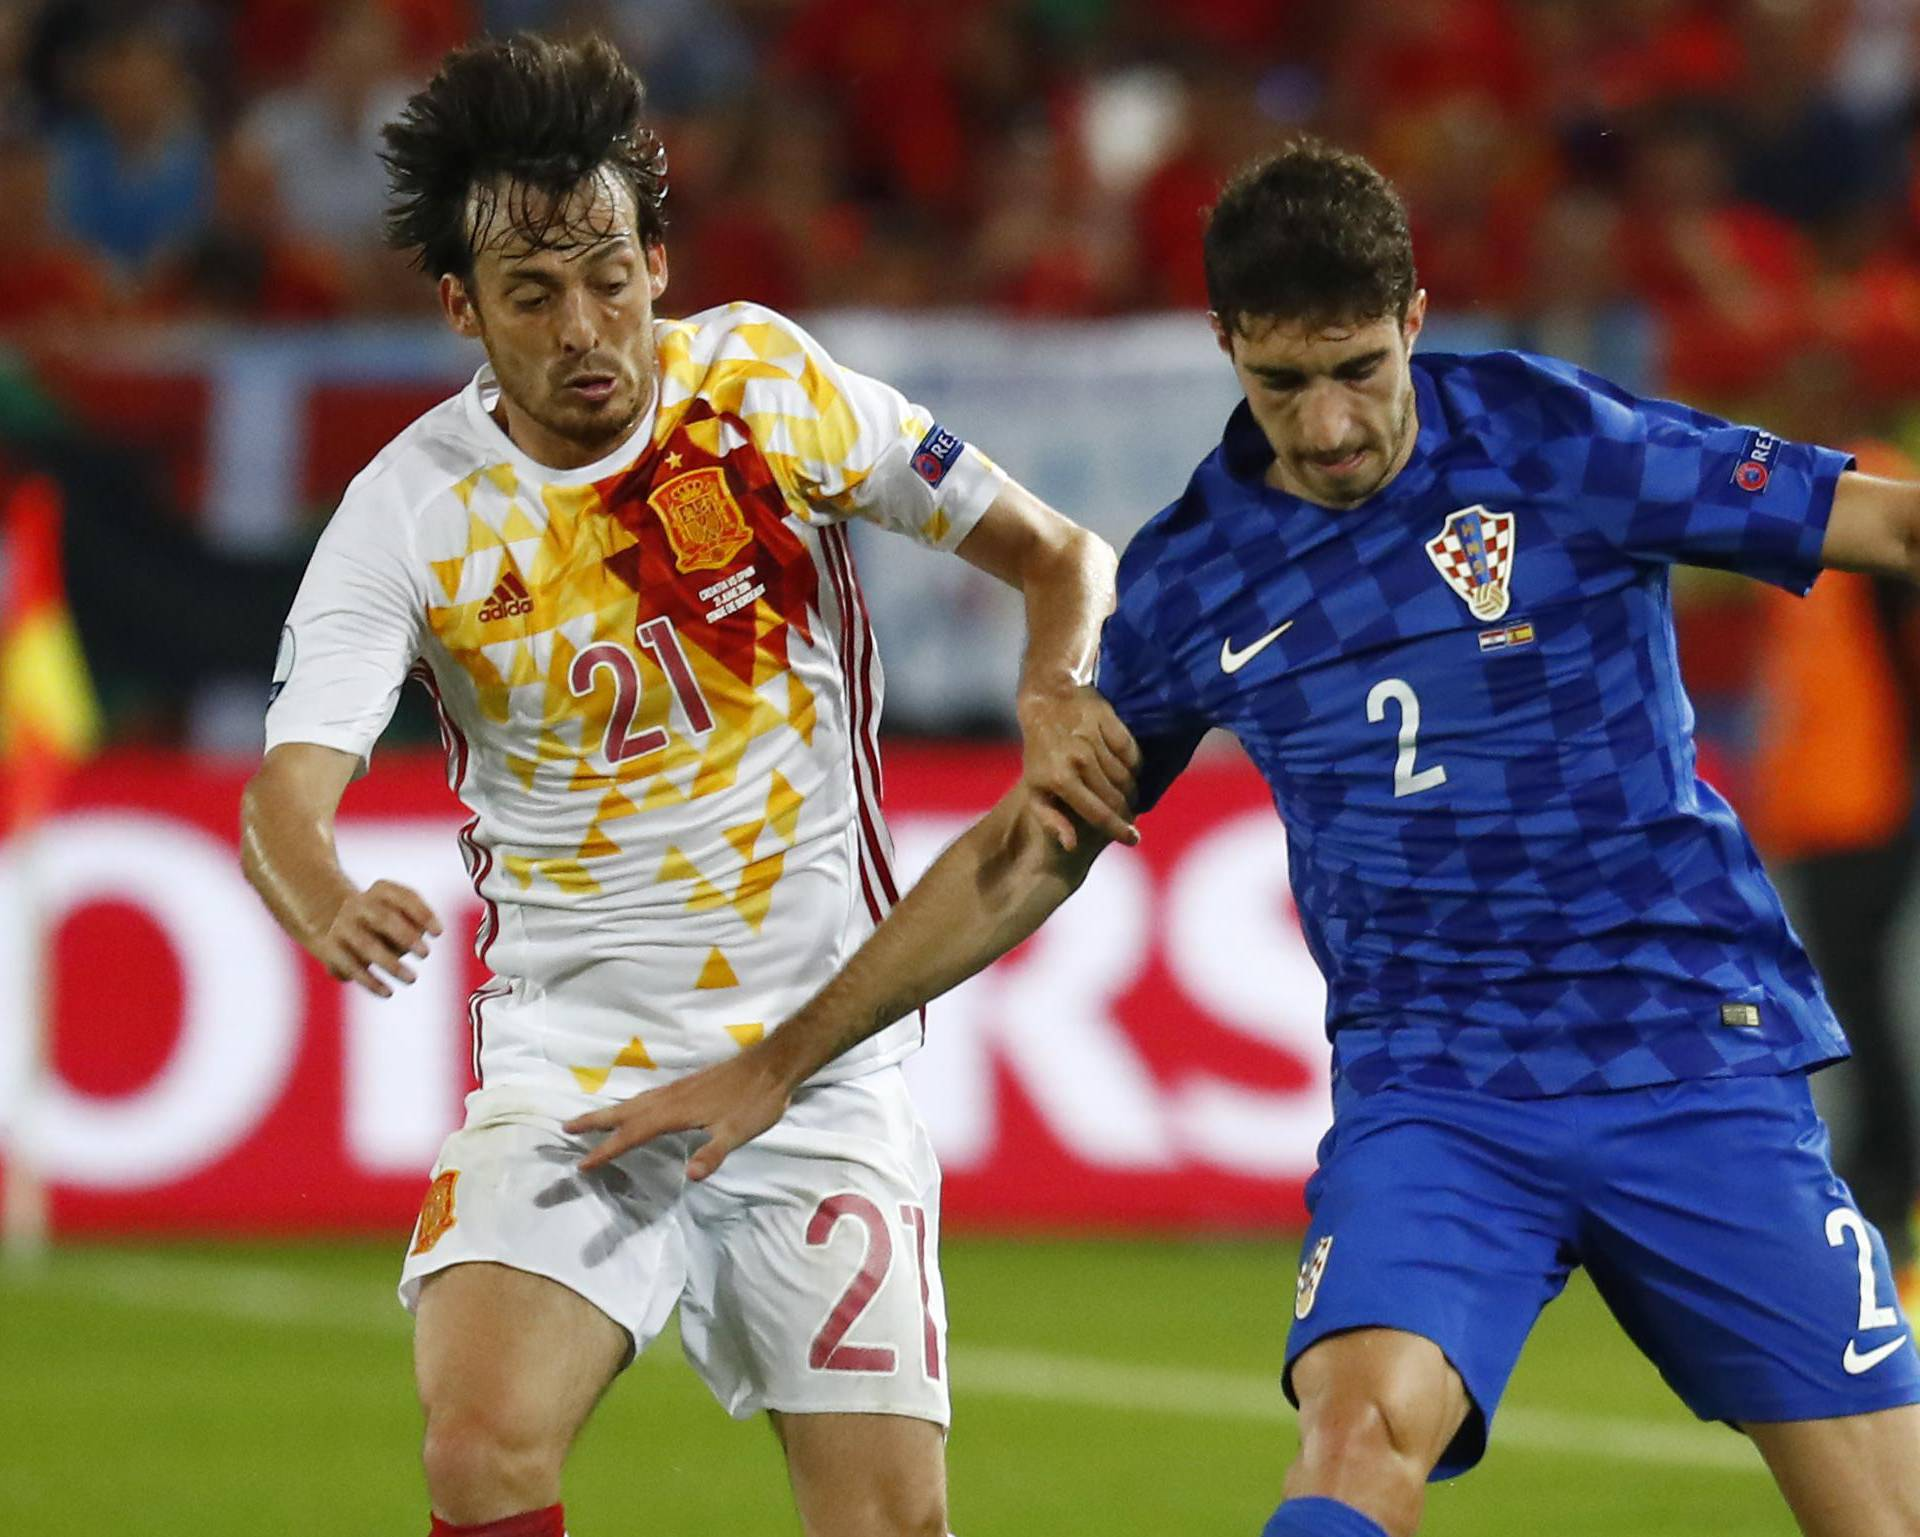 Croatia v Spain - EURO 2016 - Group D